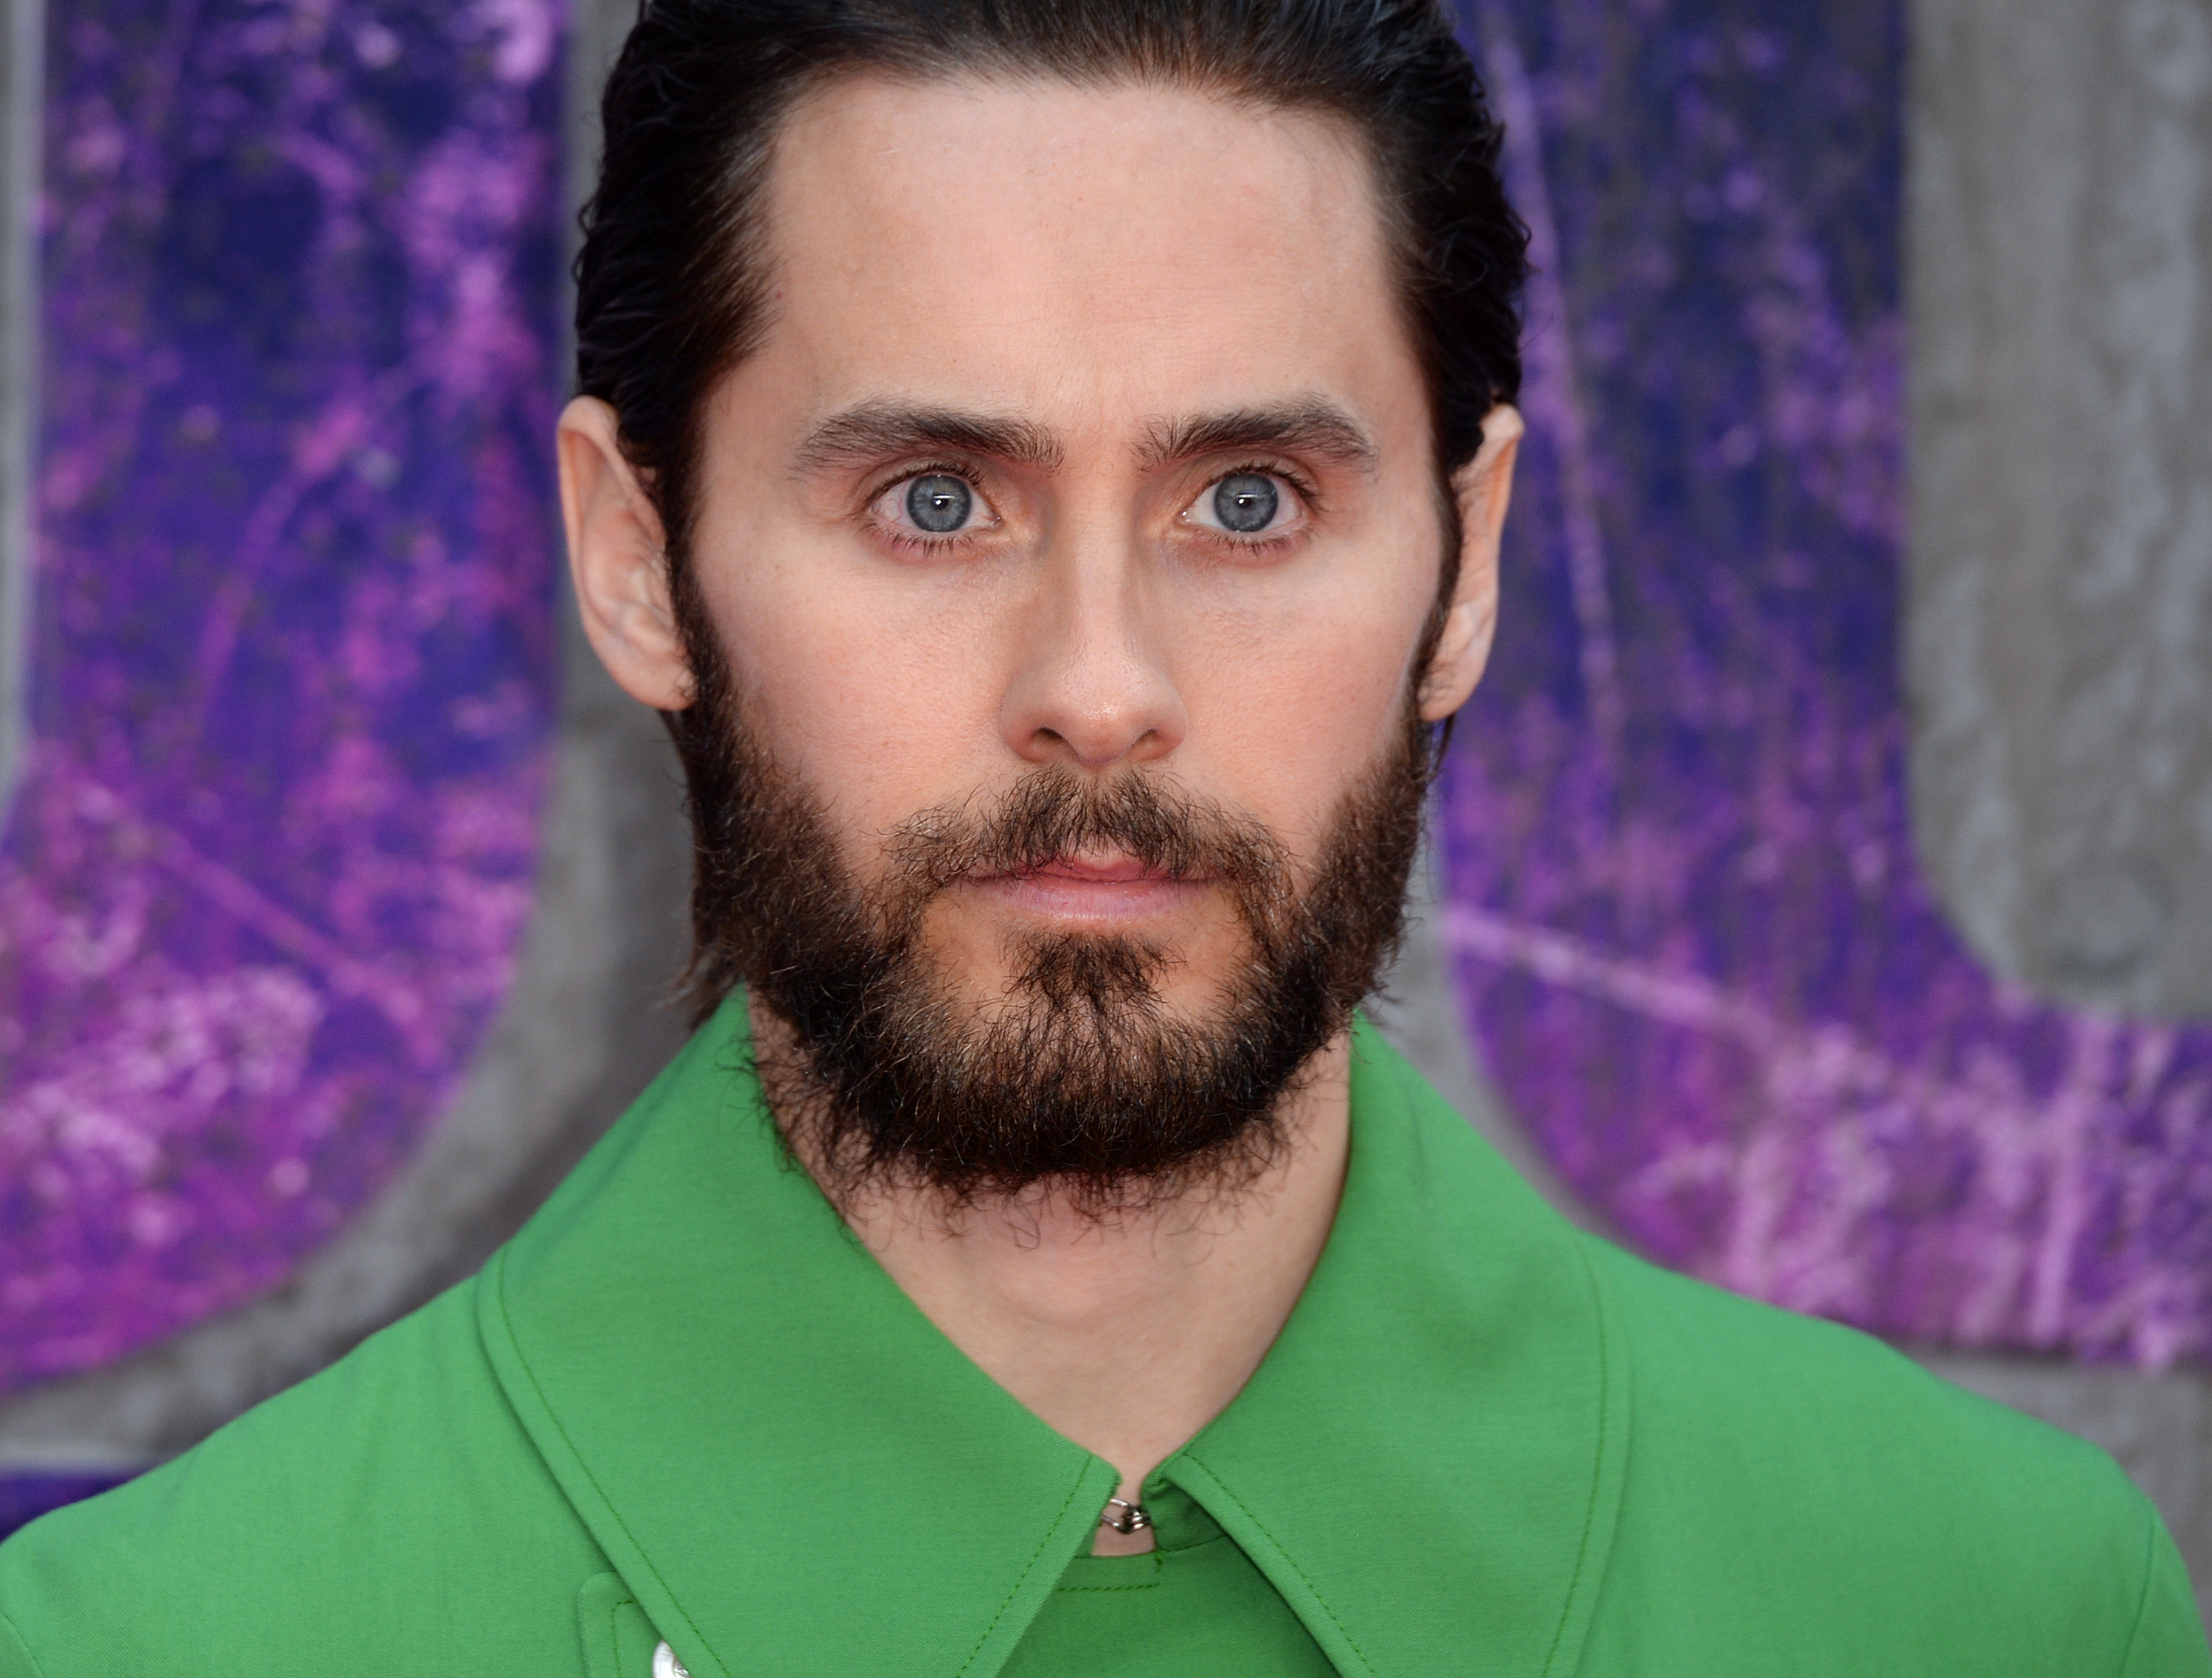 Guys! Jared Leto is playing Andy Warhol in an Andy Warhol biopic and we can't wait